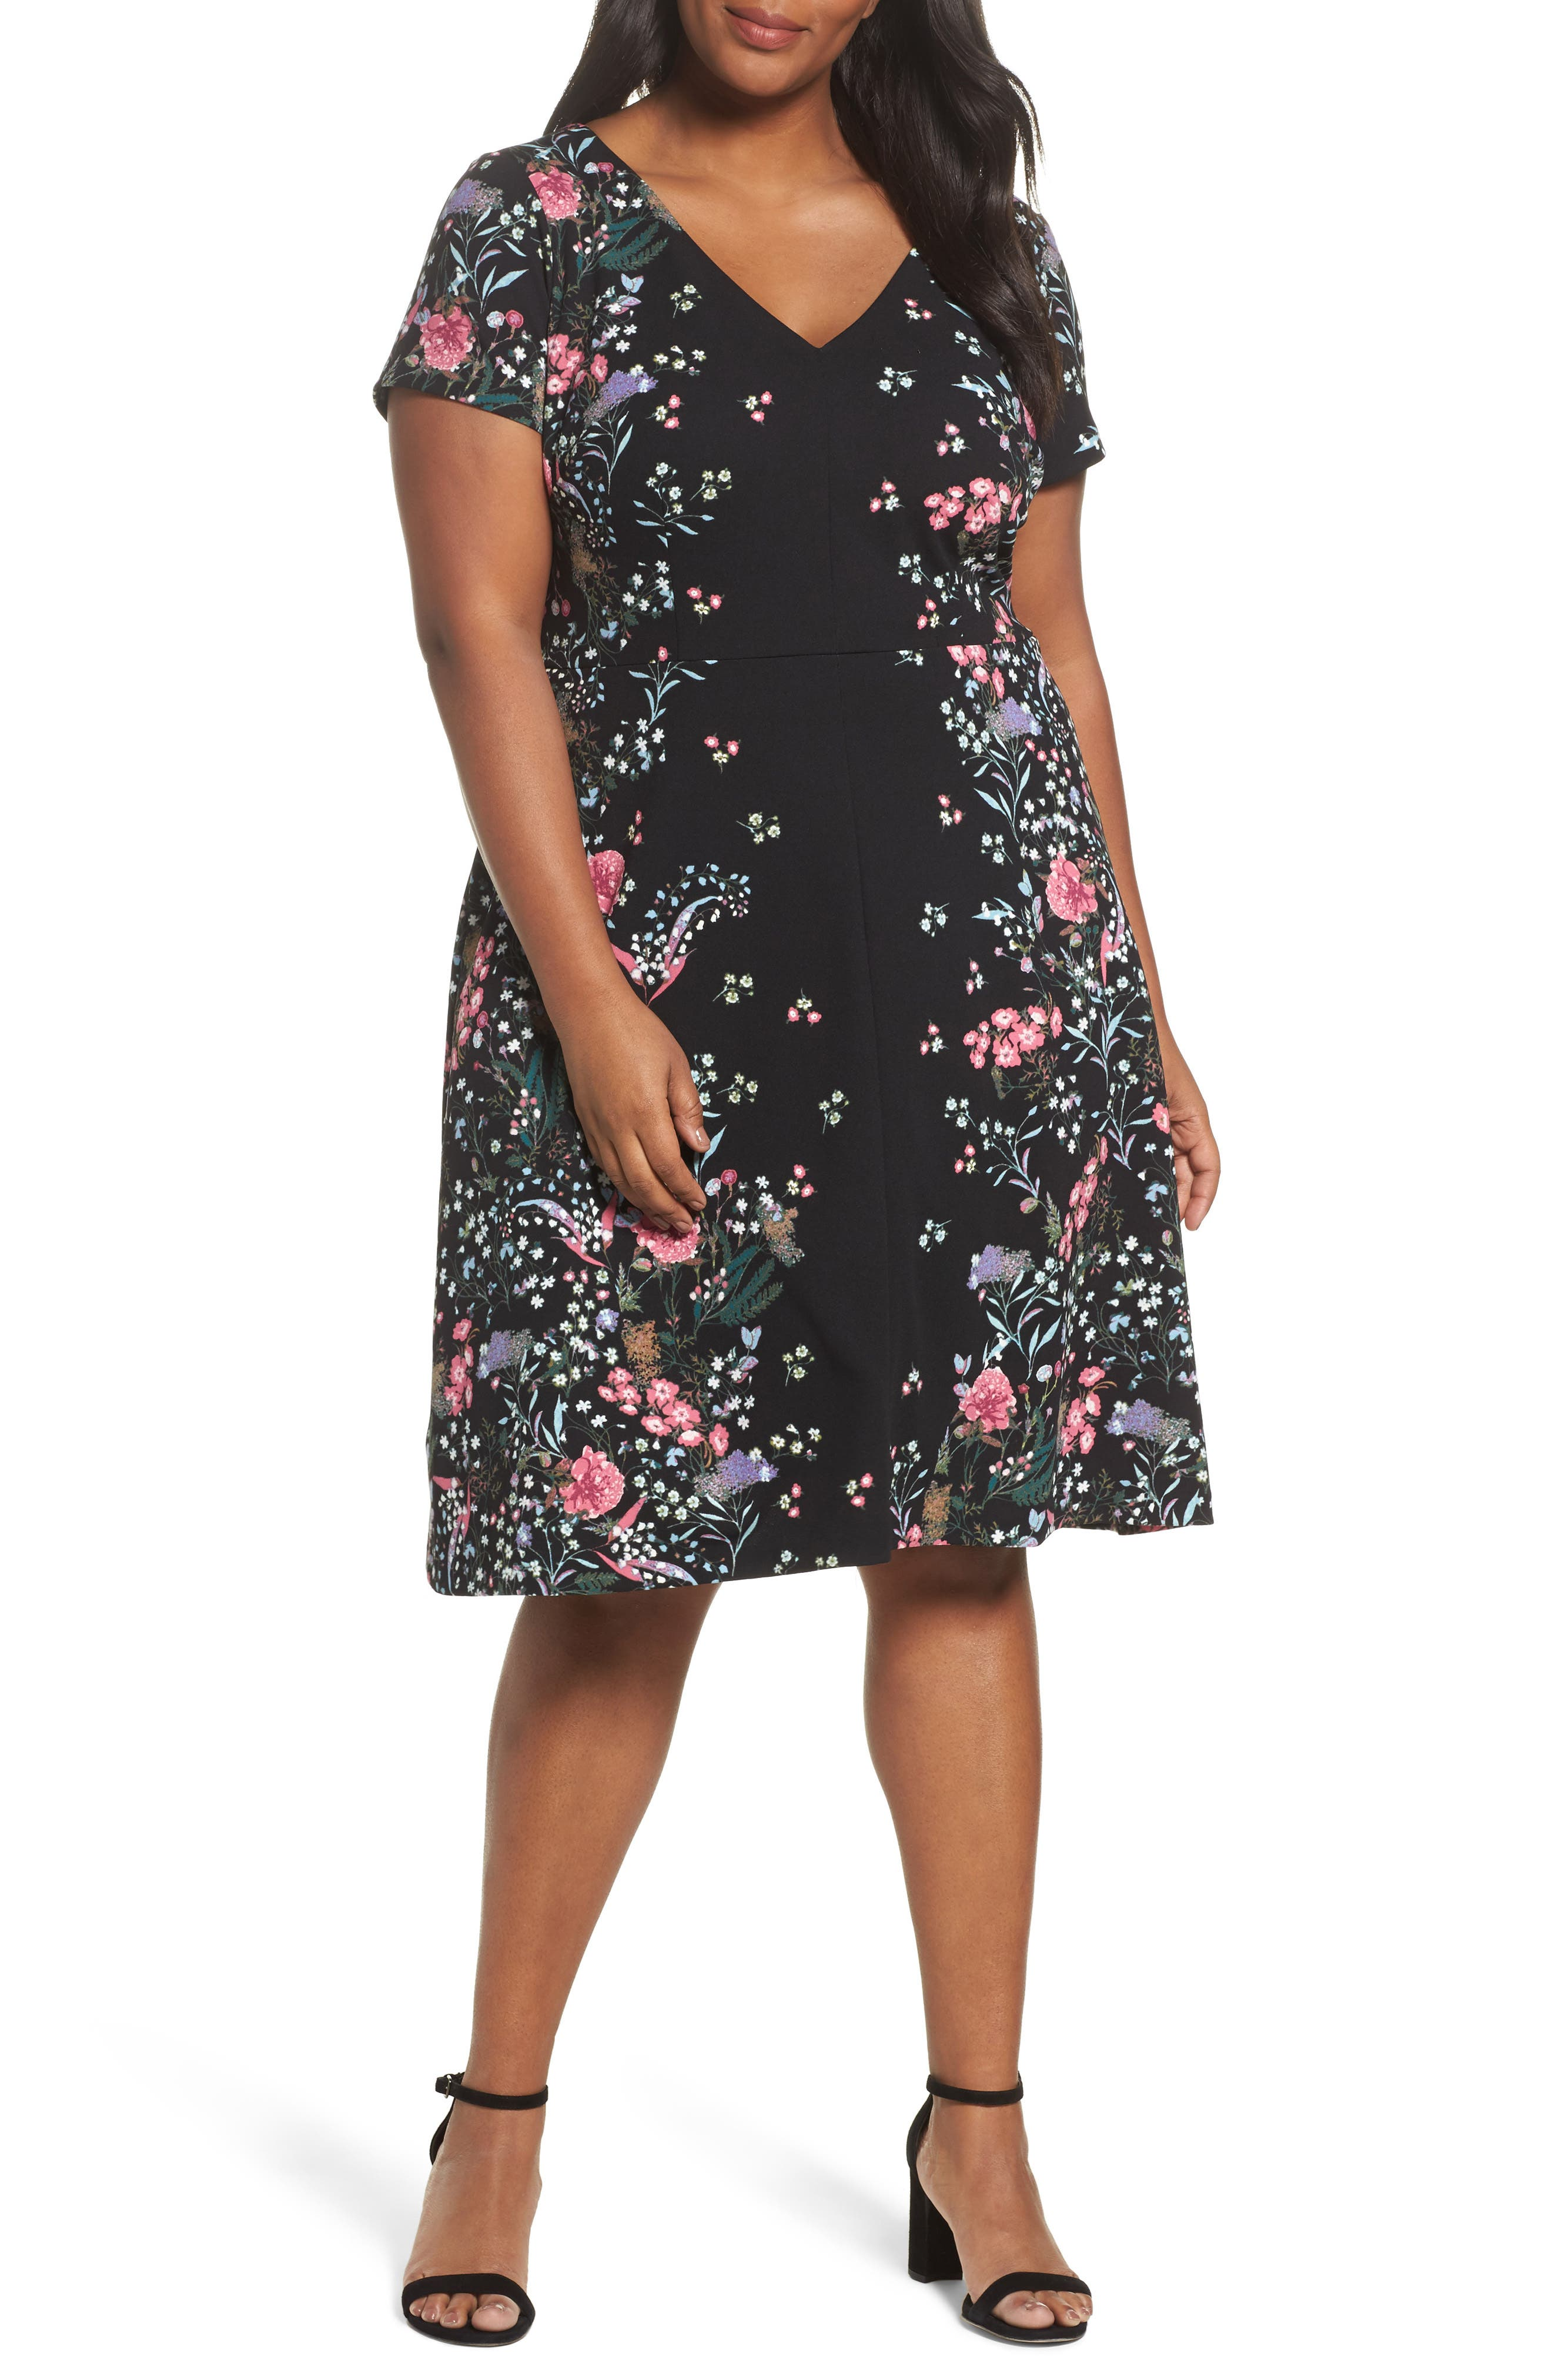 Main Image - Adrianna Papell Print Scuba Knit Fit & Flare Dress (Plus Size)